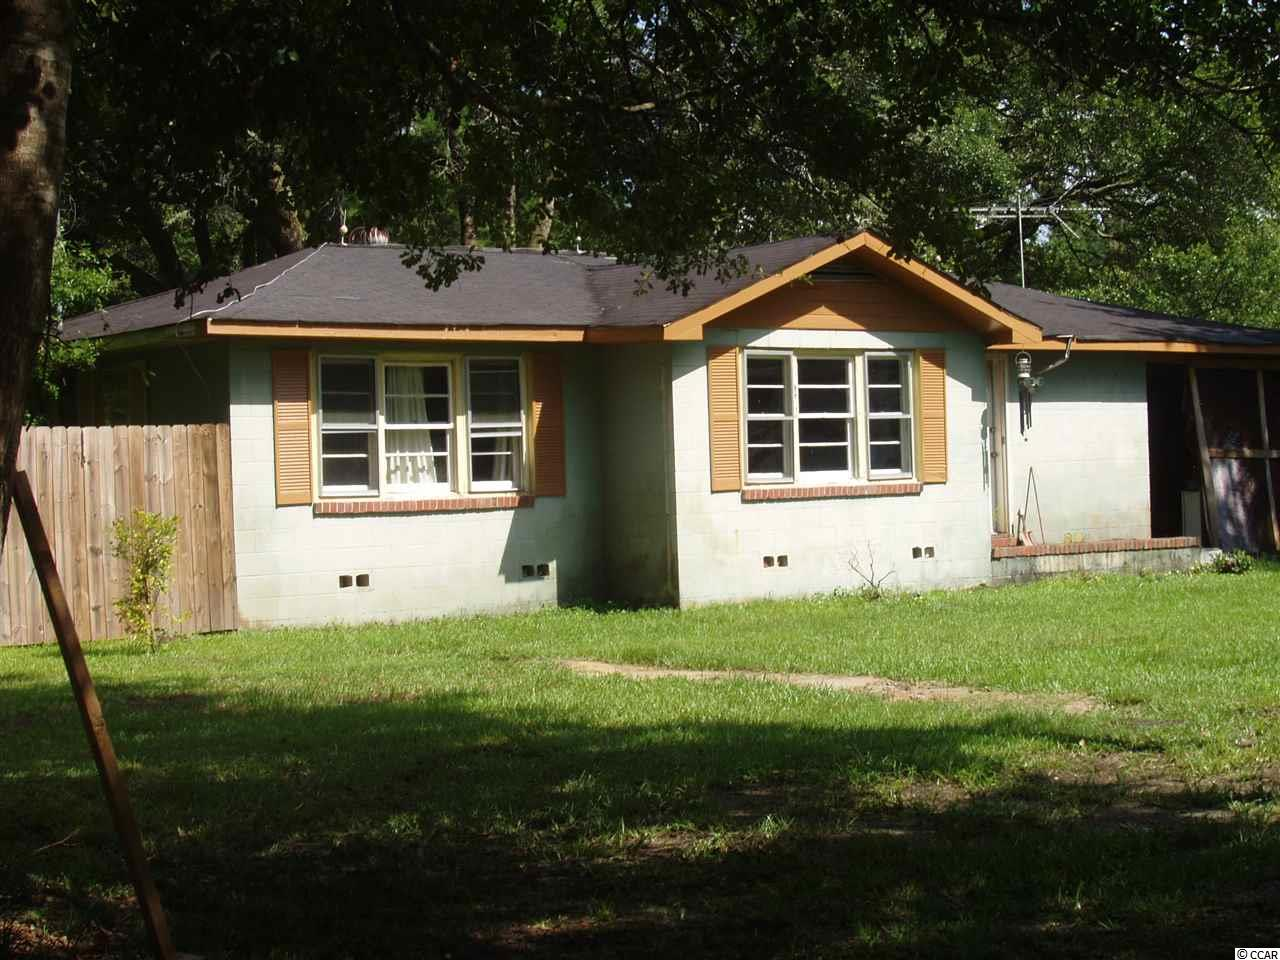 "4.5 acres in a lovely, quiet, country setting. Fixer upper cinderblock house. Has heat but no cooling system. INTERIOR PICTURES ARE OF THE SINGLE WIDE MOBILE HOME with two bedrooms and one bathroom ON THE PROPERTY, which is in good condition. Also a small vintage house from around 1920 that needs work with approximately 400 square feet. Animal lovers dream. Chicken coop and small fenced in area for other animals. Two storage buildings on the property. Blueberry and fig bushes. Selling ""as-is"". Public water and sewer. Updated plumbing. Driveway regraveled. RV parking. Buyer responsible for verification of square footage of land and buildings."